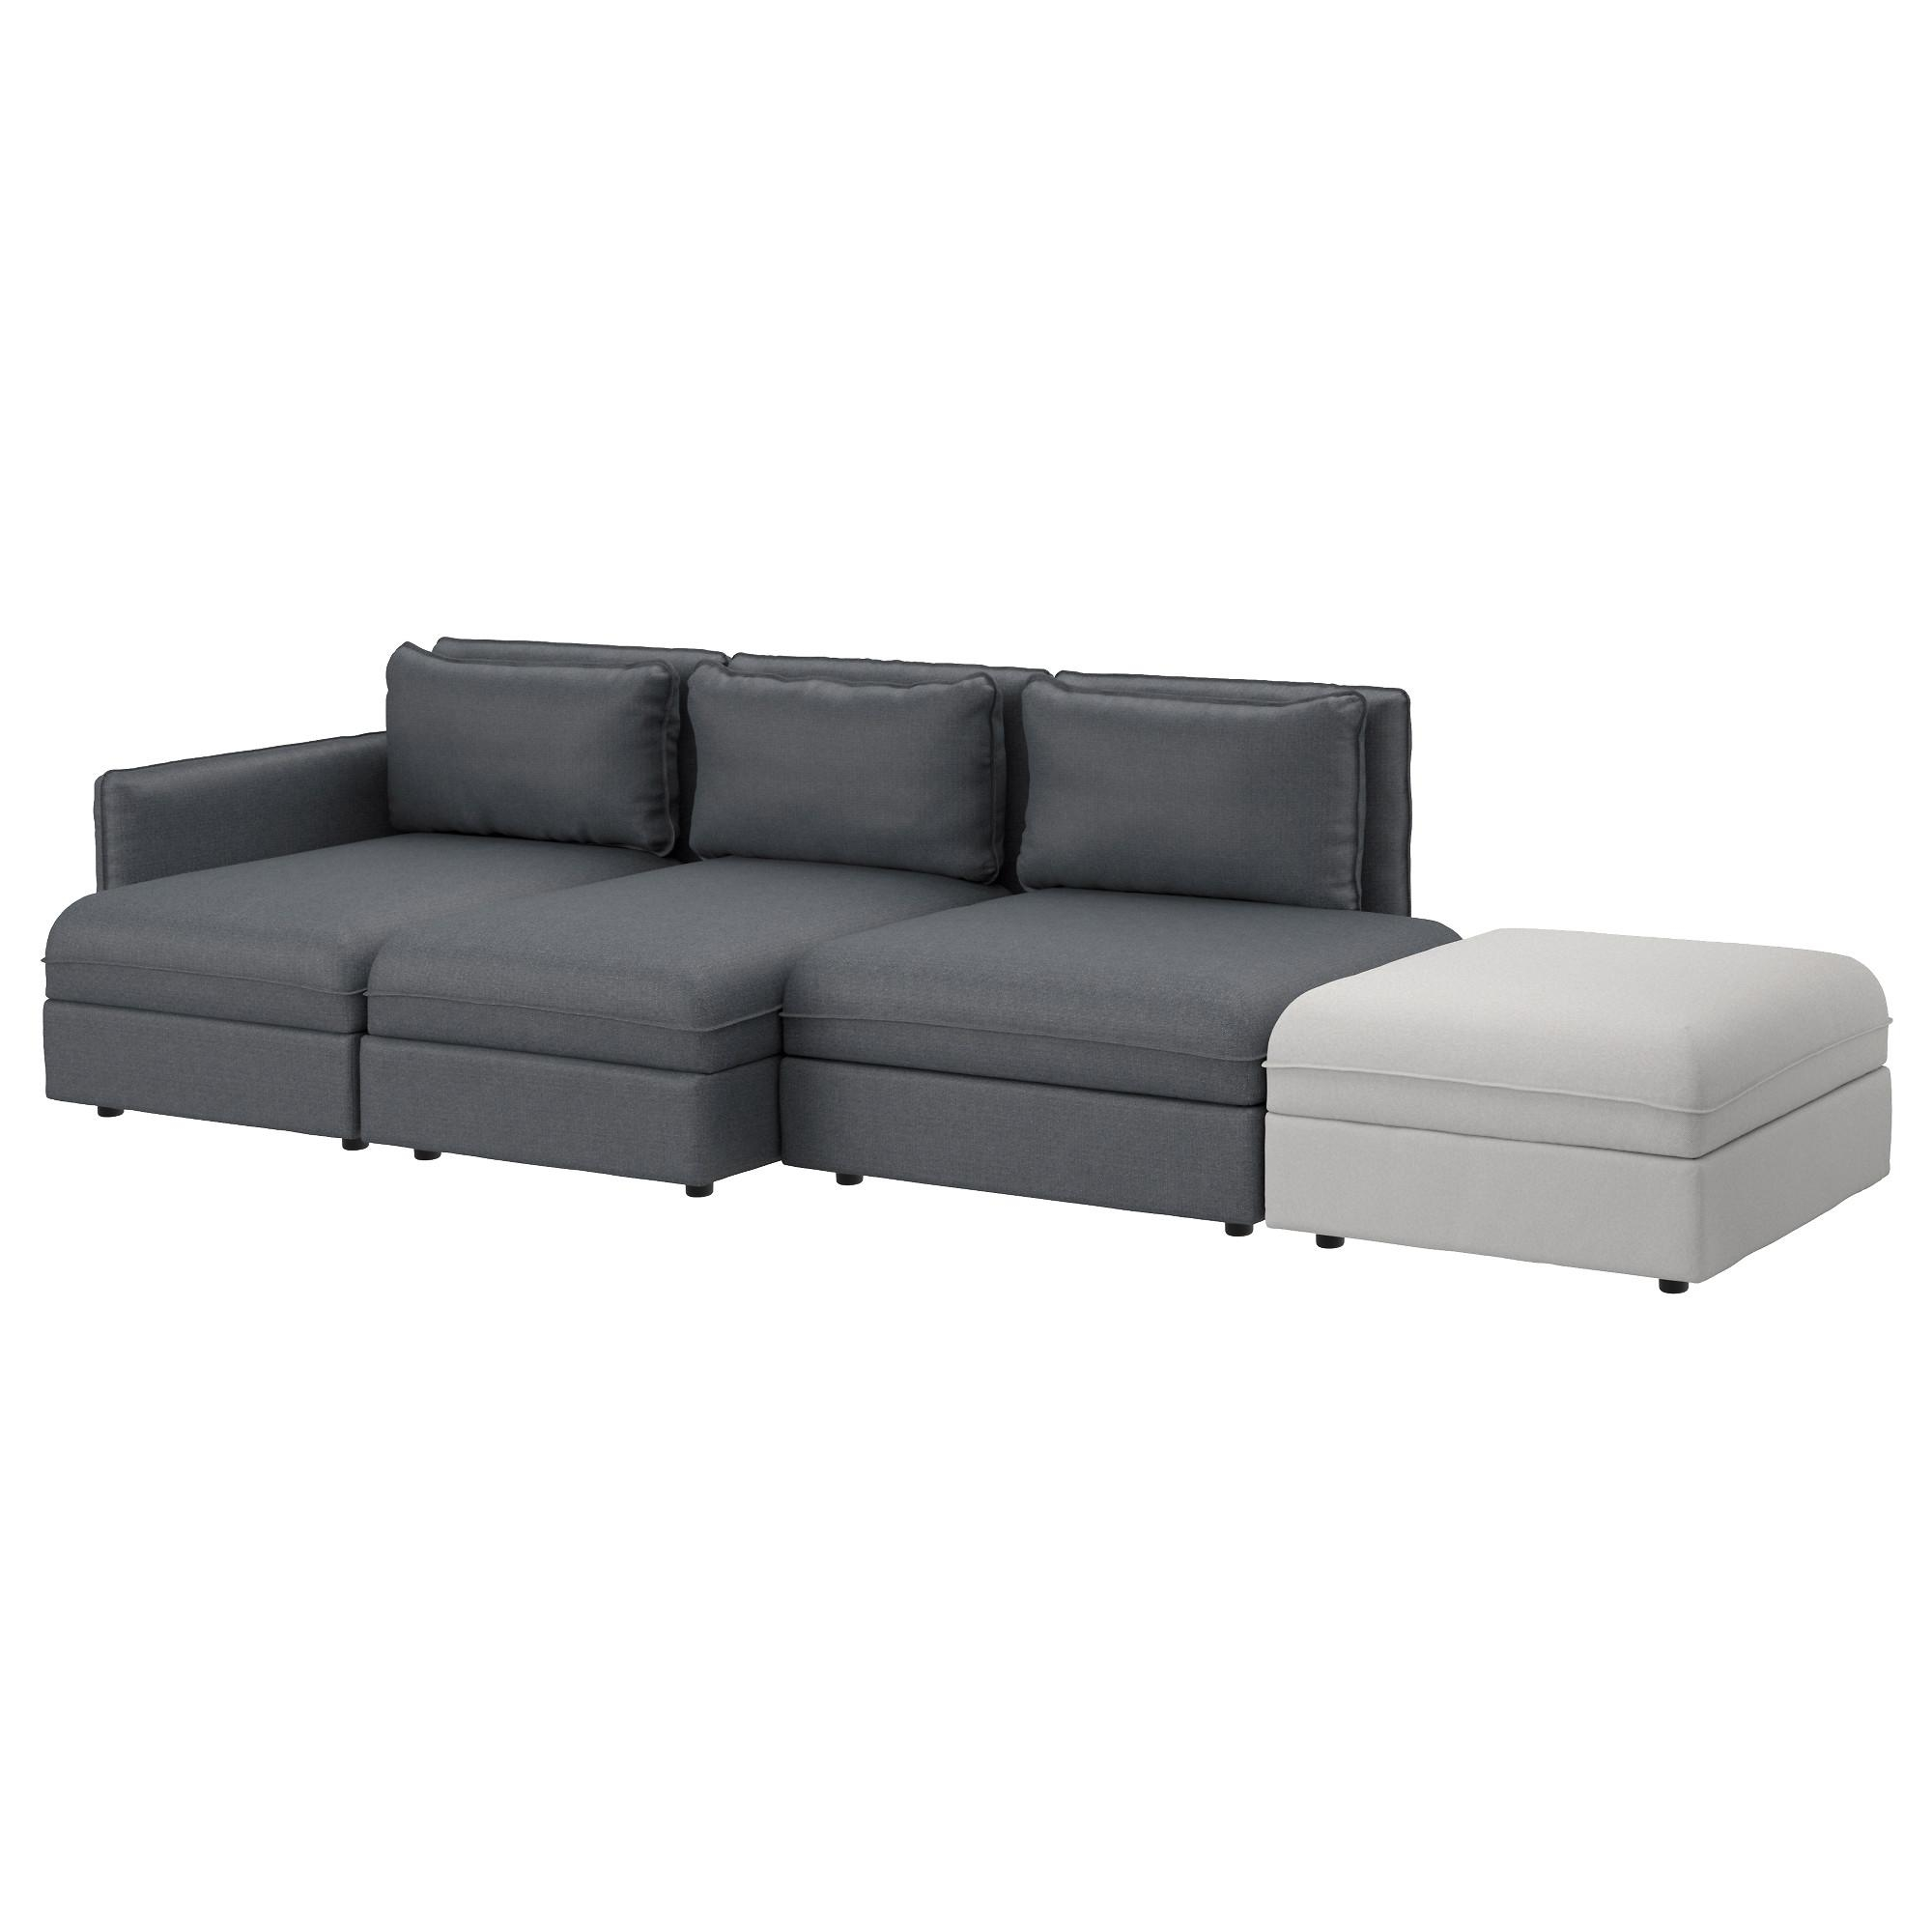 Modular Sofas & Sectionals – Ikea With Modular Sofas (Image 16 of 20)